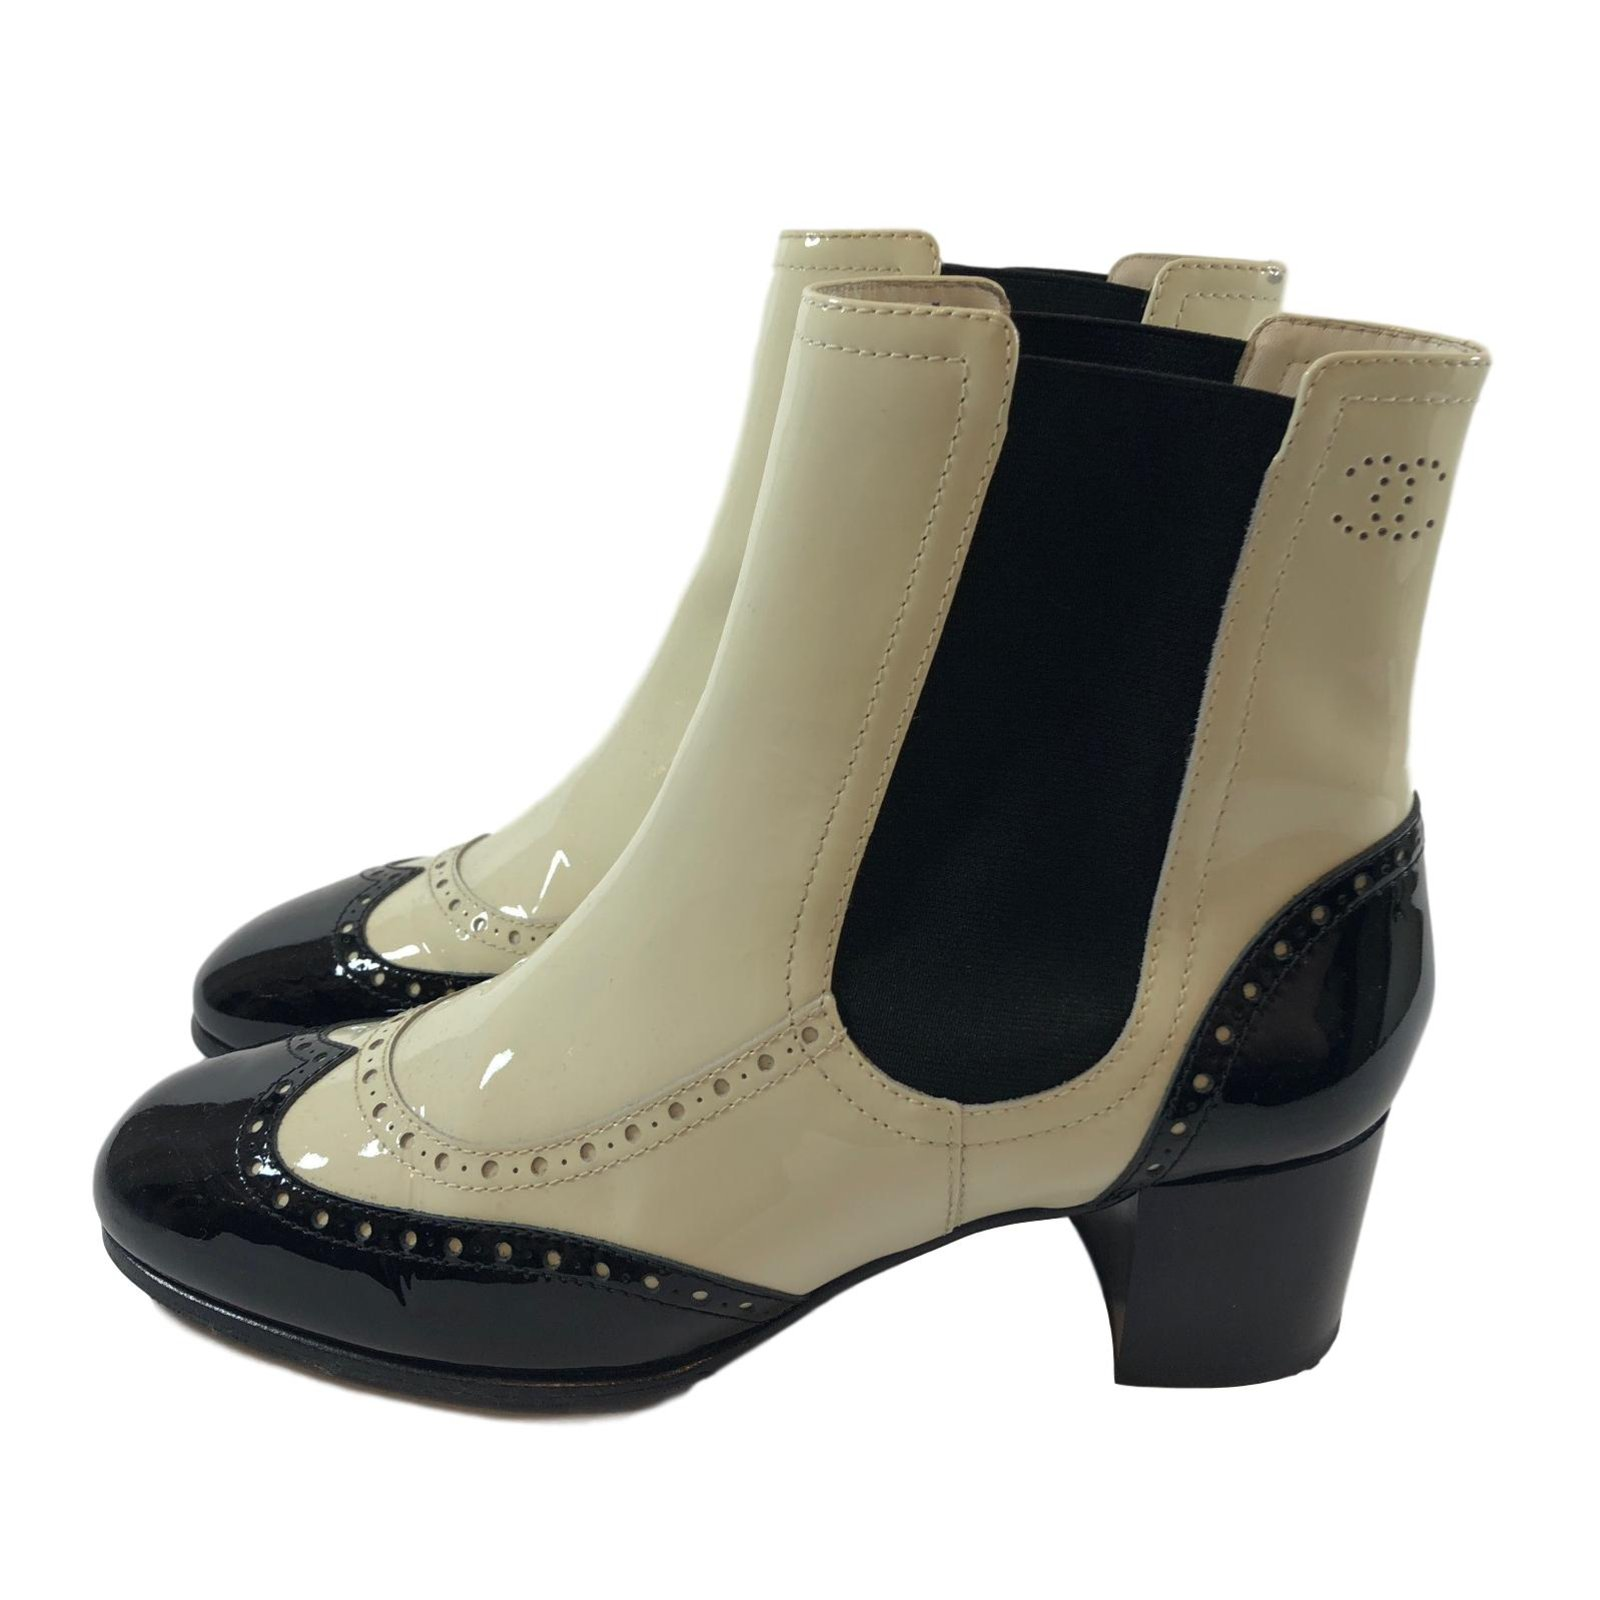 95b9442b6 Chanel Boots Ankle Boots Patent leather Black,White ref.68681 - Joli ...